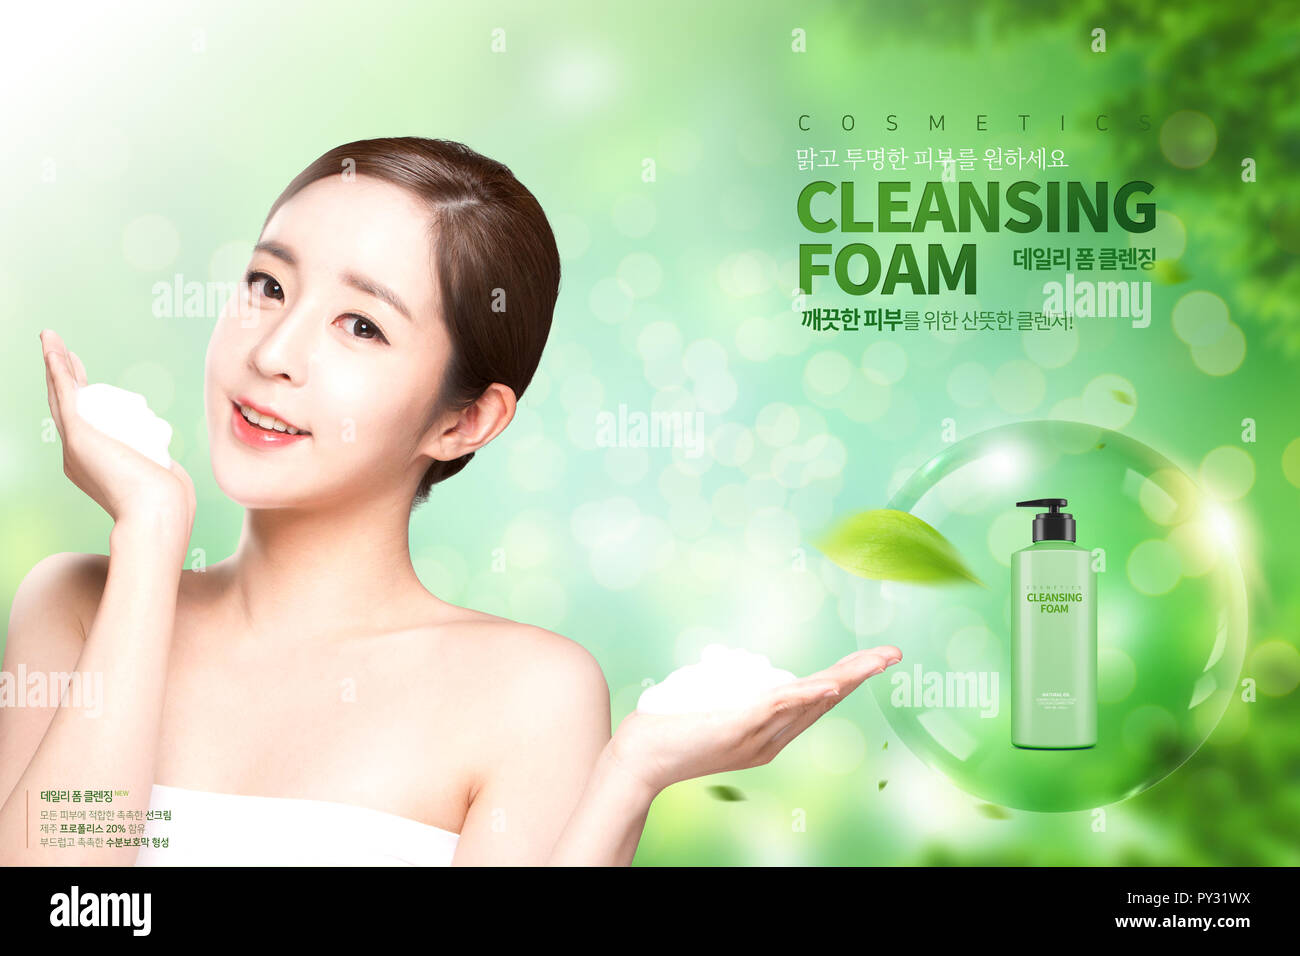 Beautiful Asian Woman Skin Care Concept Beauty Cosmetics Posters Banners Design 002 Stock Photo Alamy